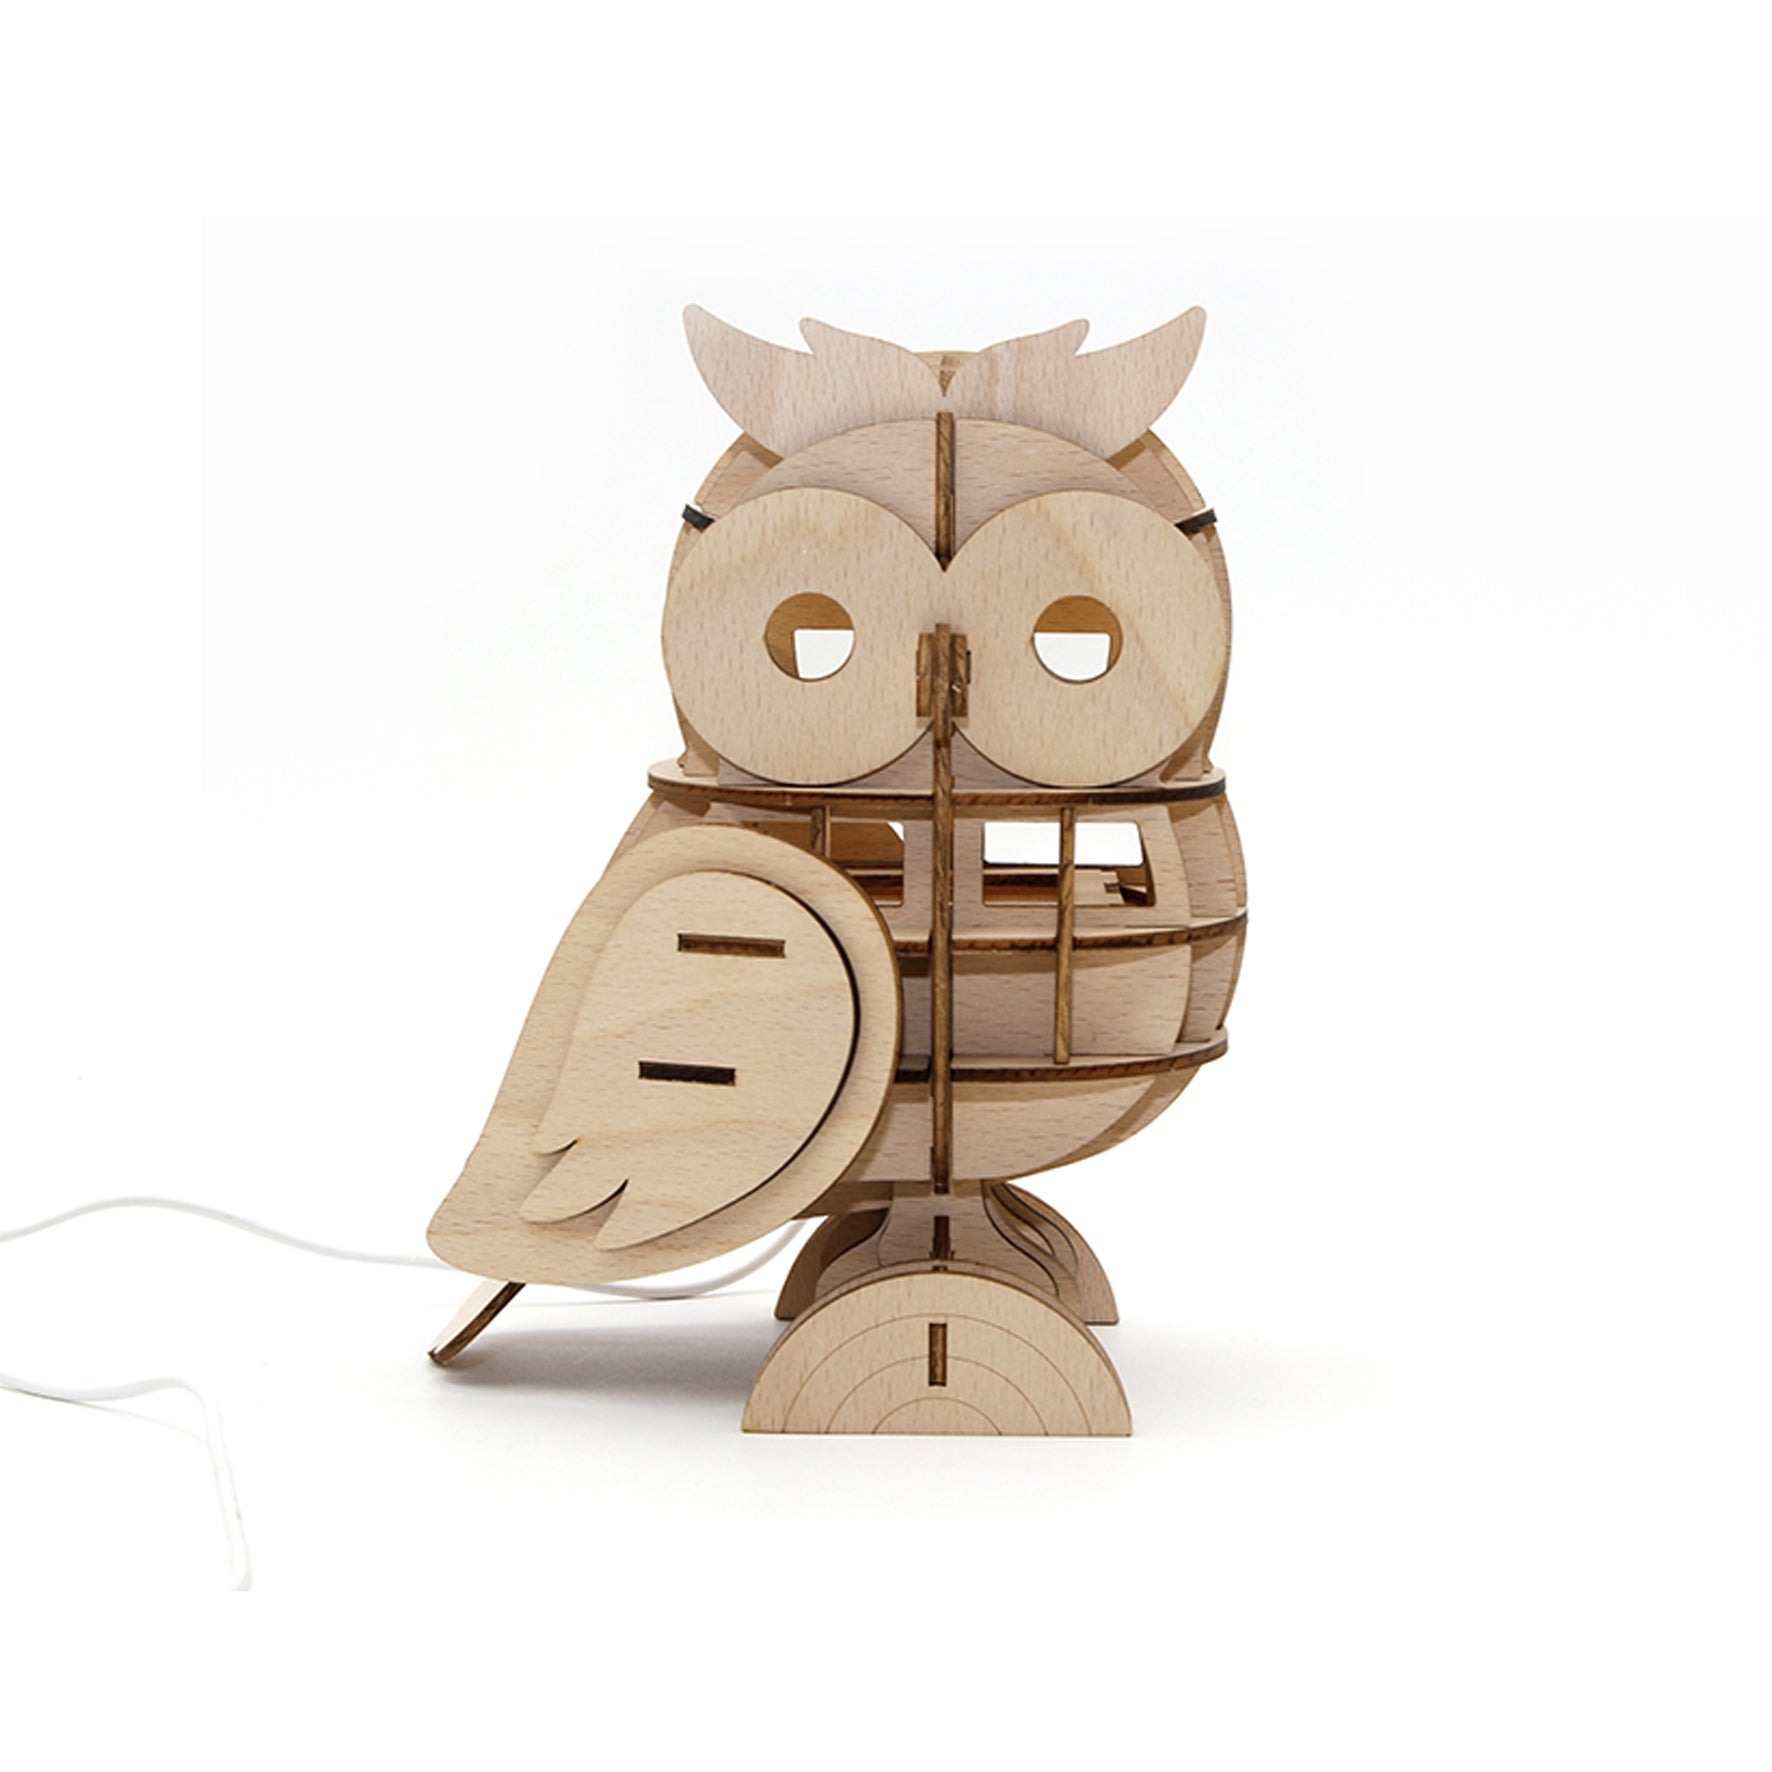 Puzzle 3D madera Jigzle – Owl lámpara armable